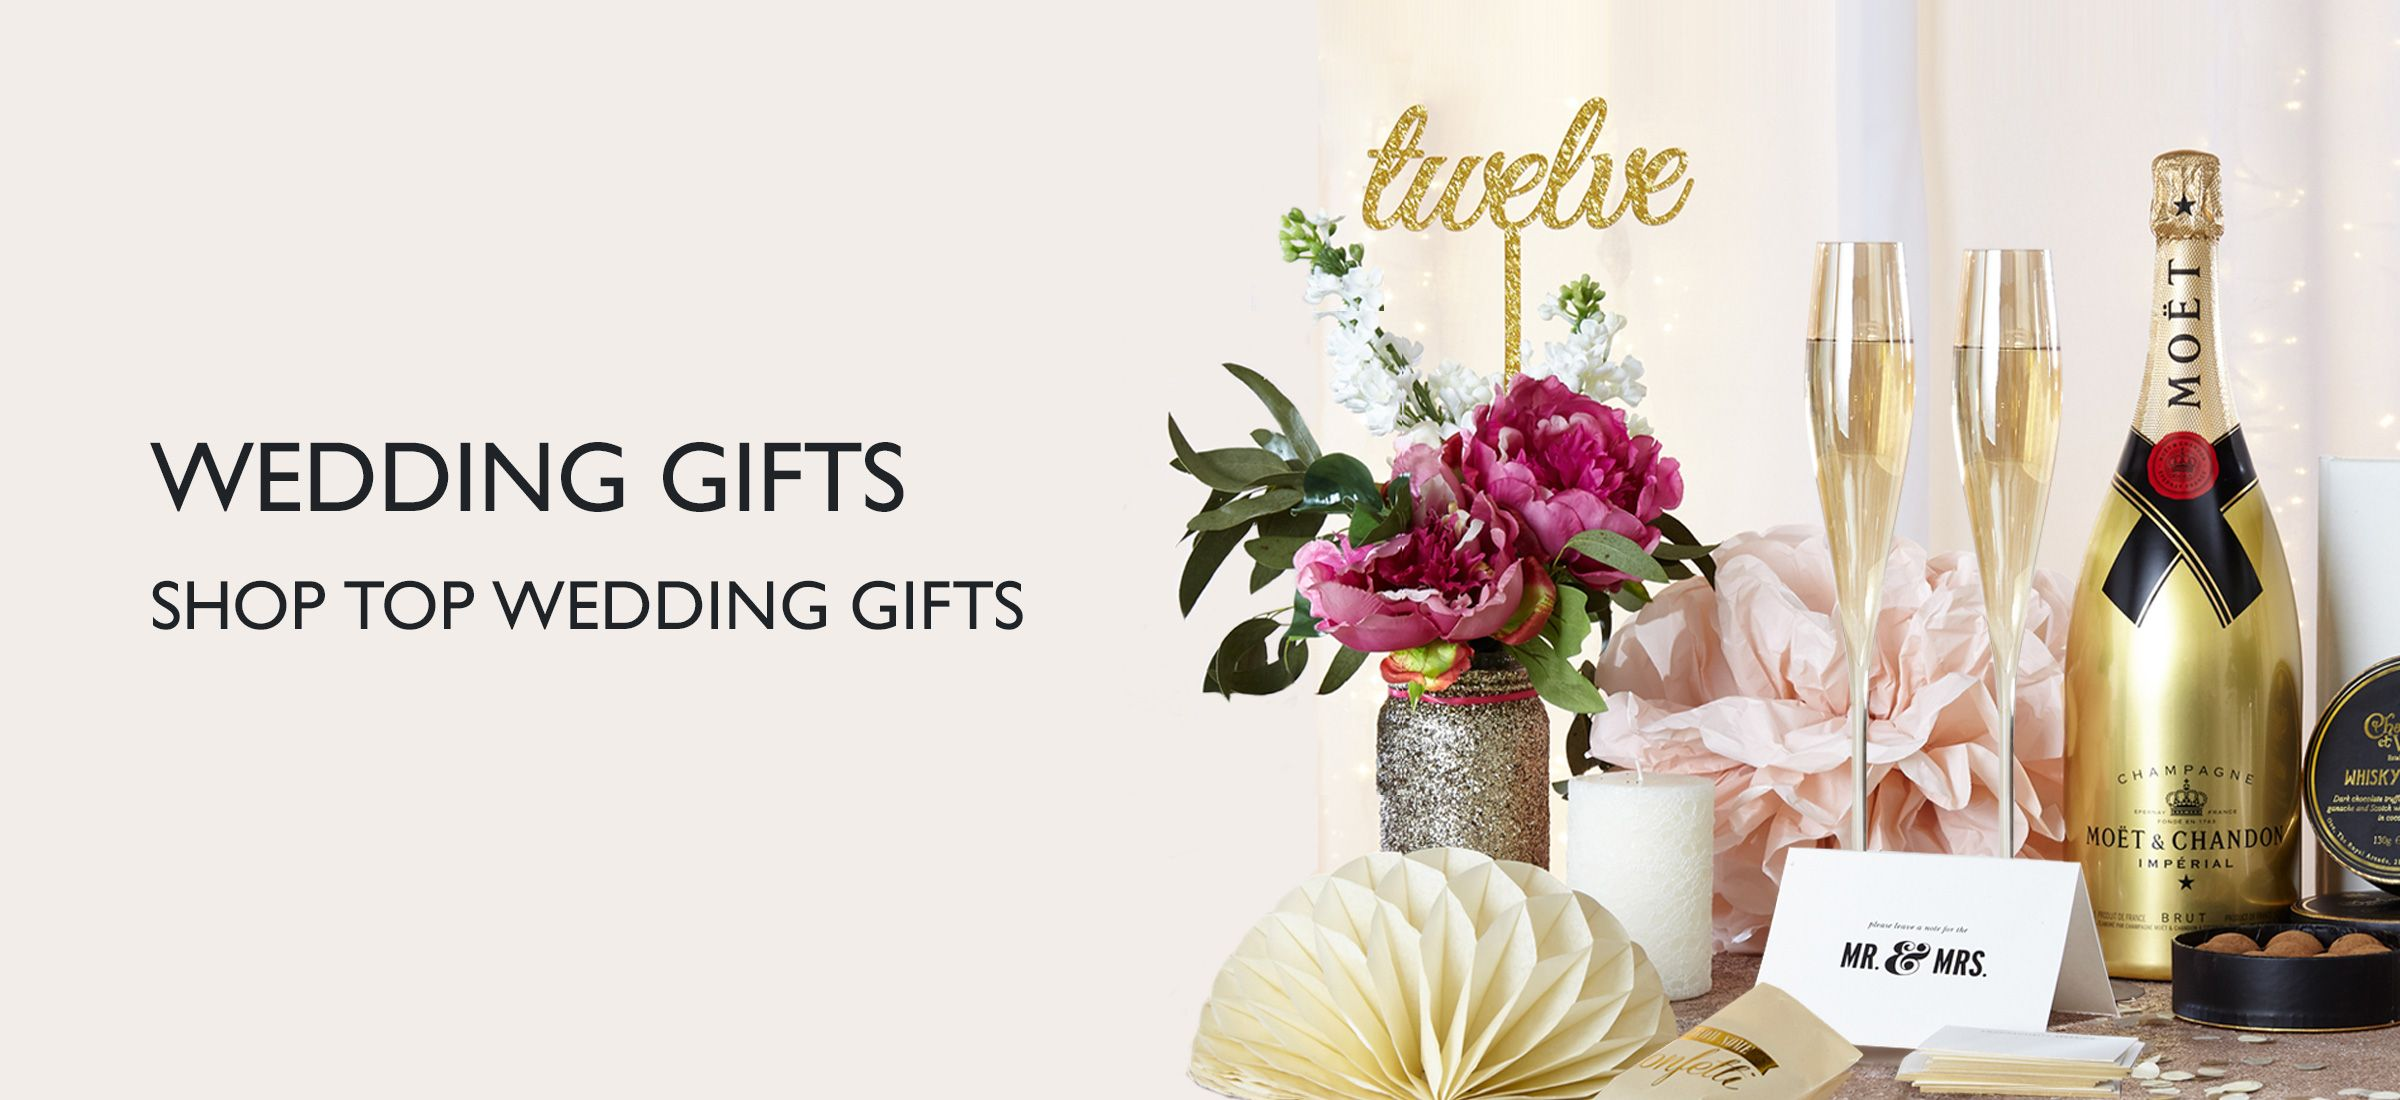 Top Wedding Gifts